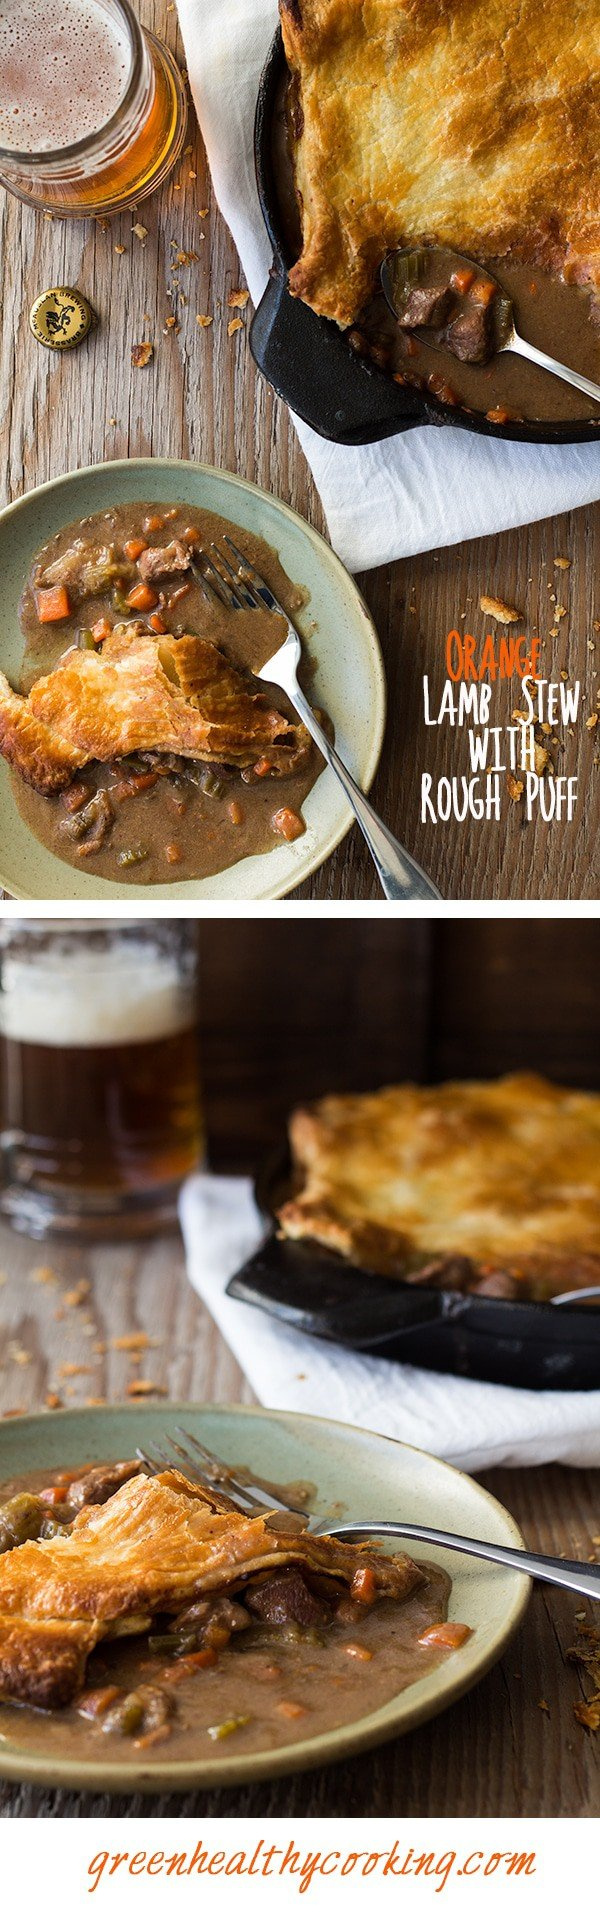 Collage of Orange Lamb Stew with Rough Puff images with text overlay for Pinterest.